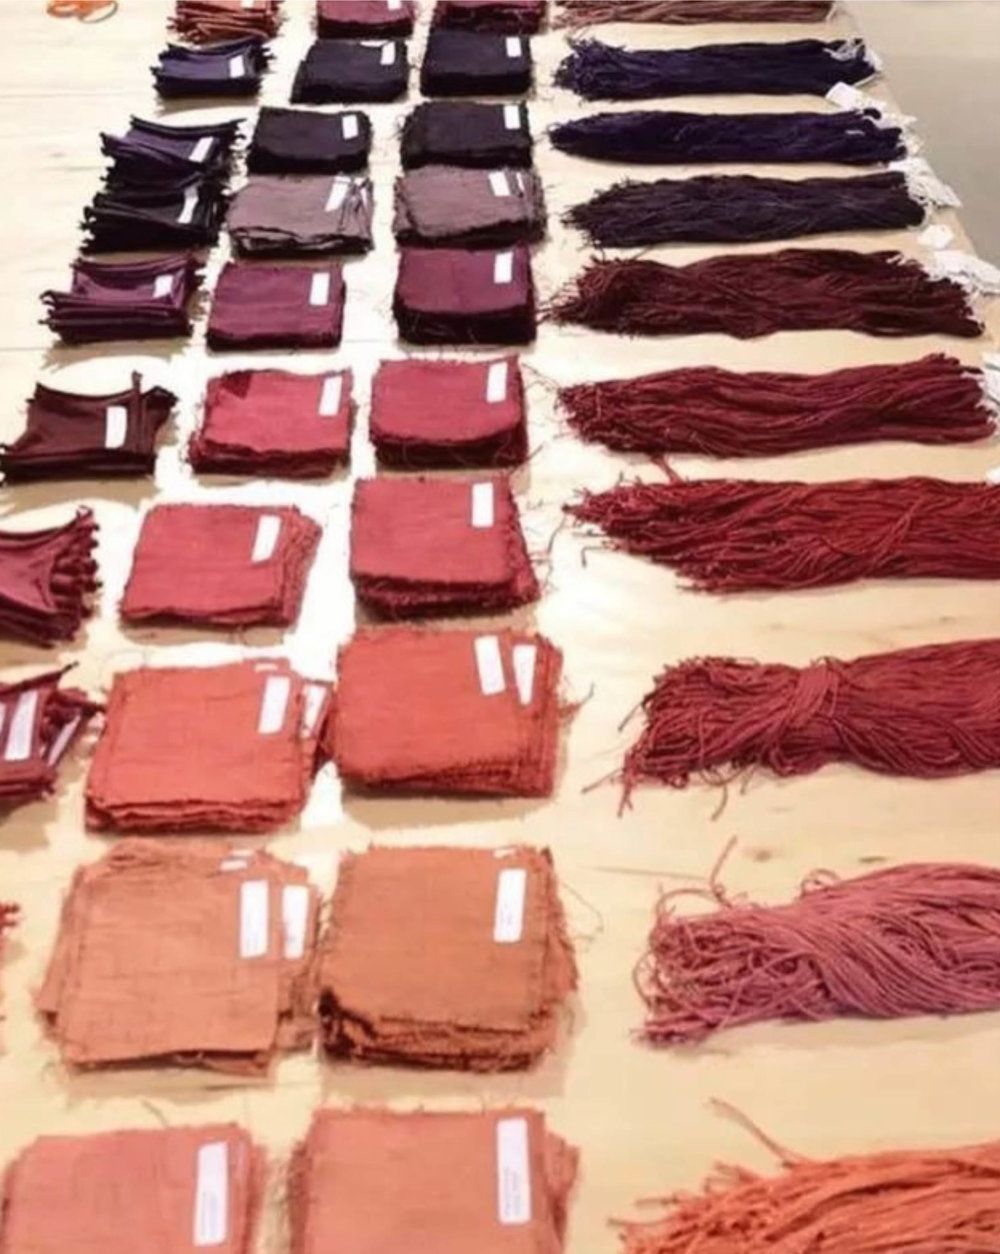 HPF Flatlay natural dye swatches.jpg